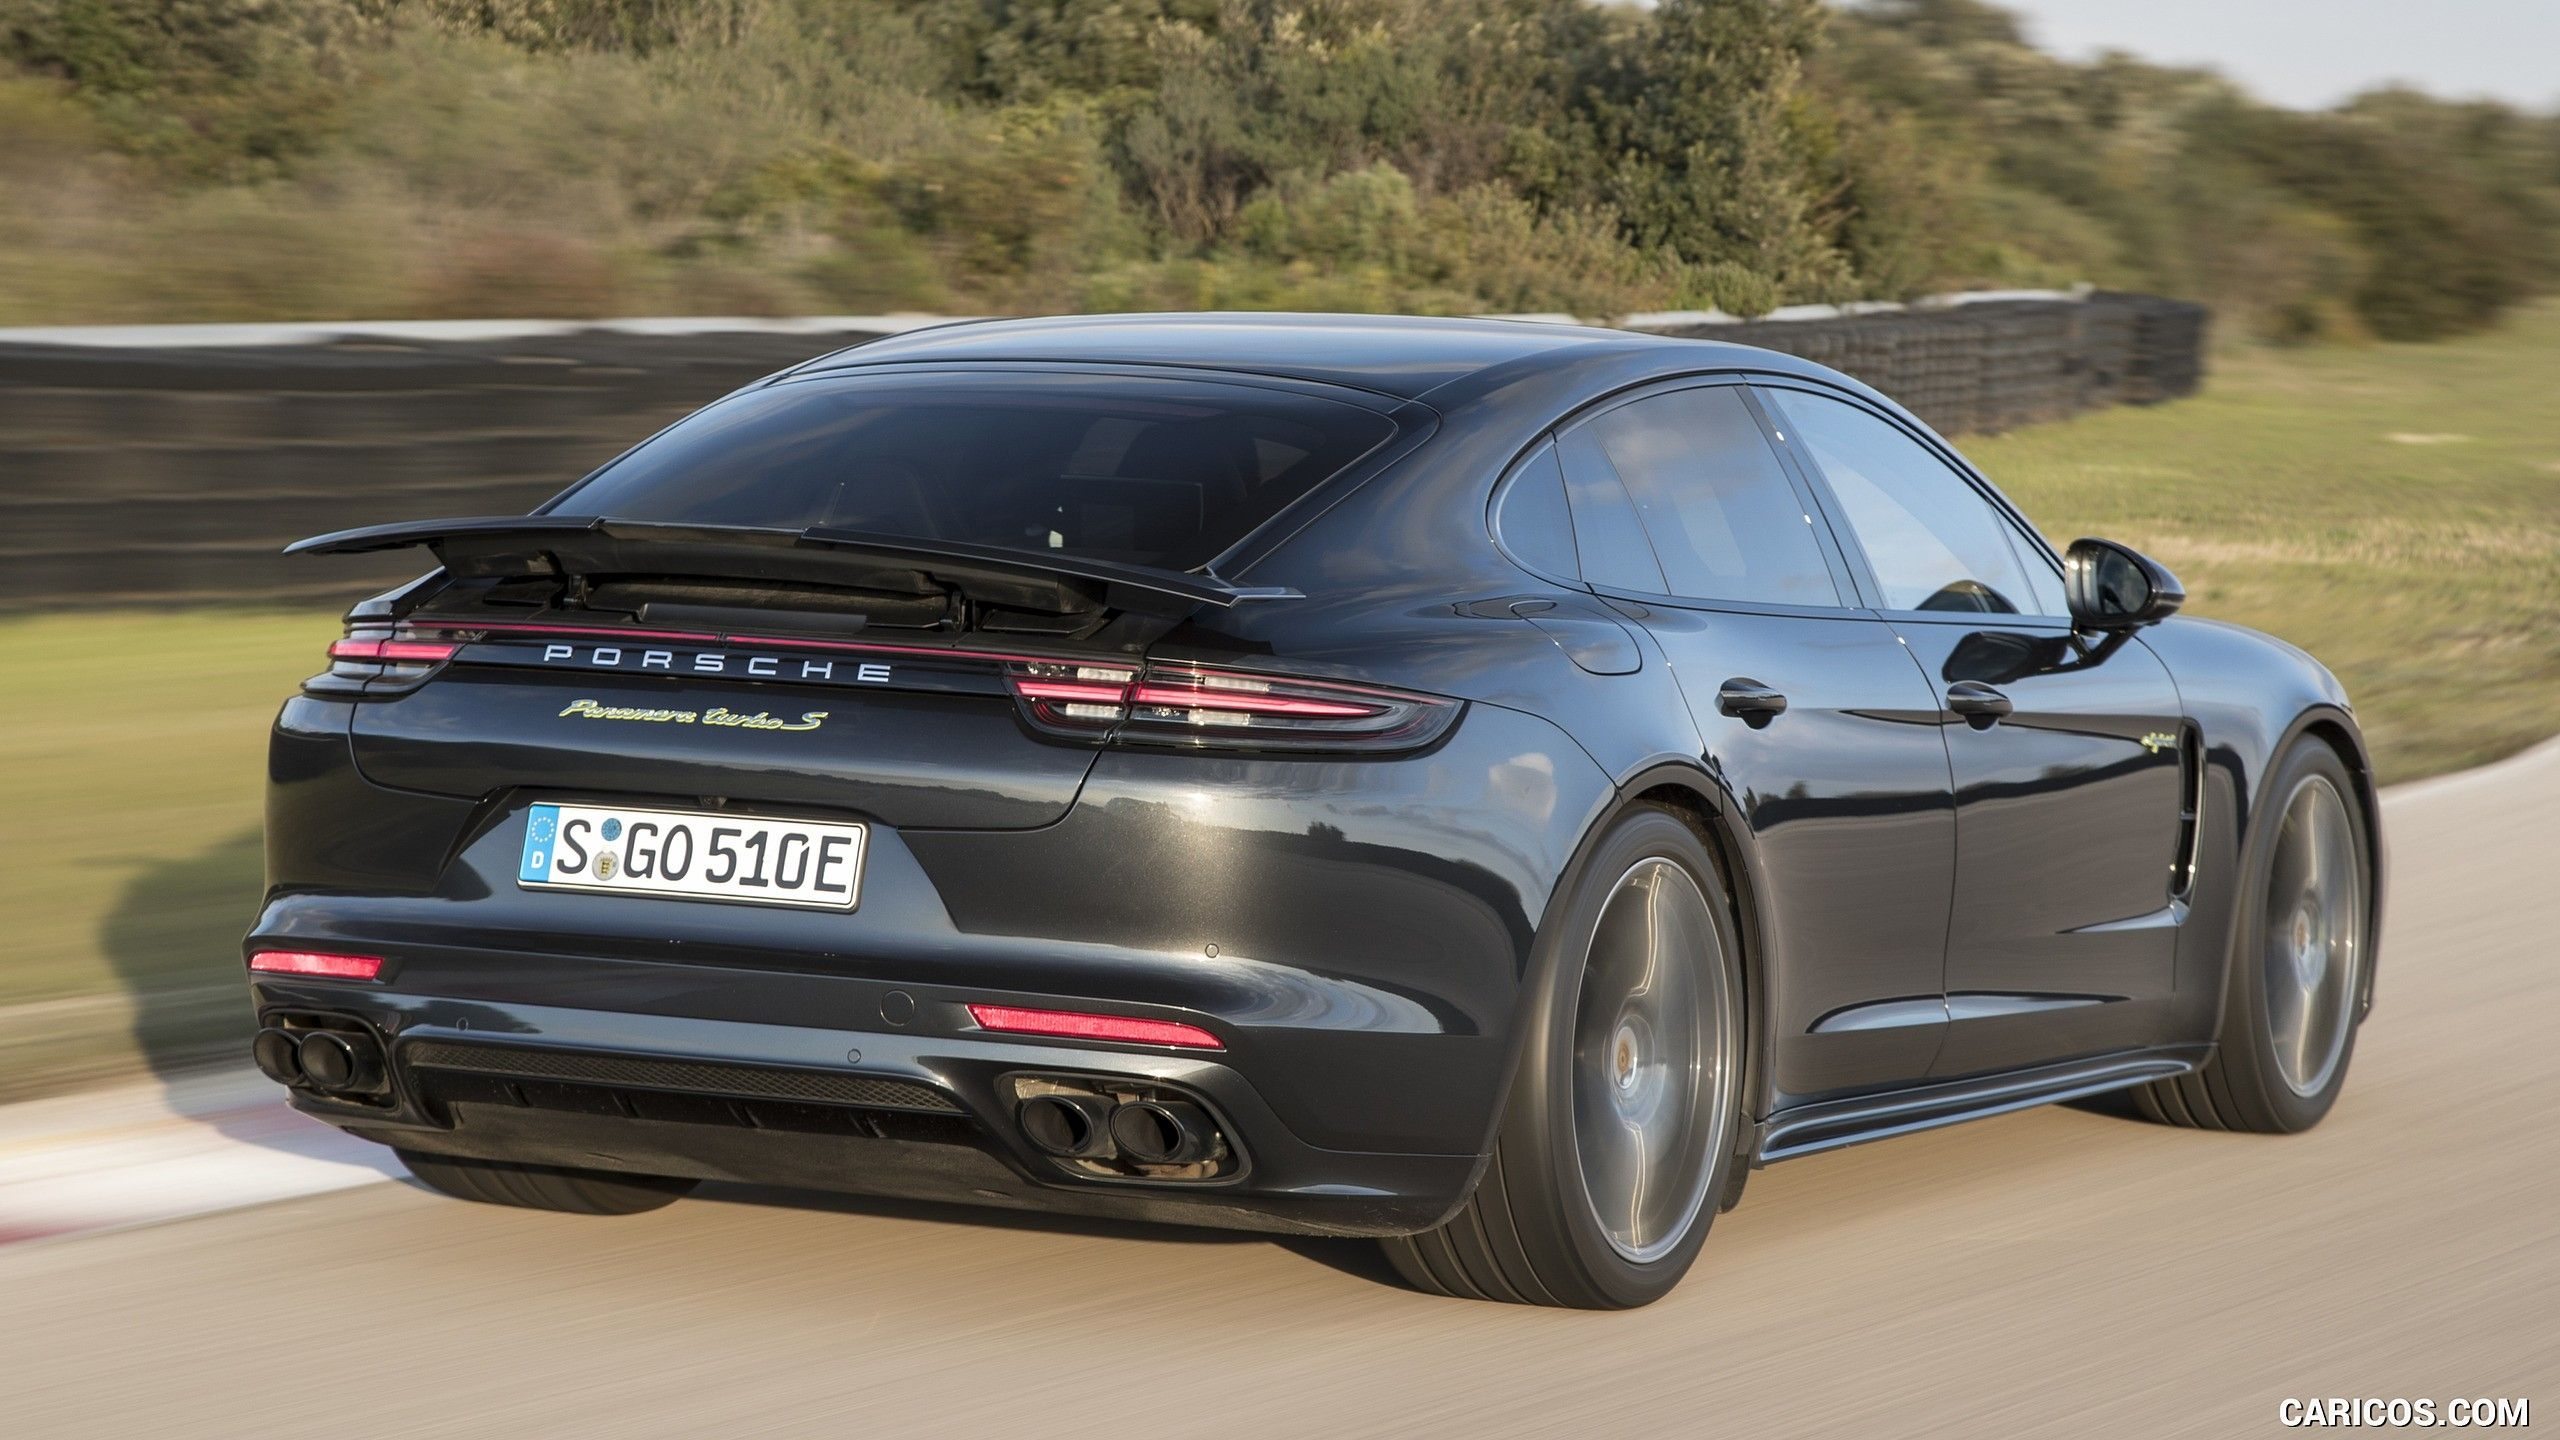 2018 Porsche Panamera Turbo S Specs And Review Porsche Panamera Porsche Panamera Turbo Panamera Turbo S